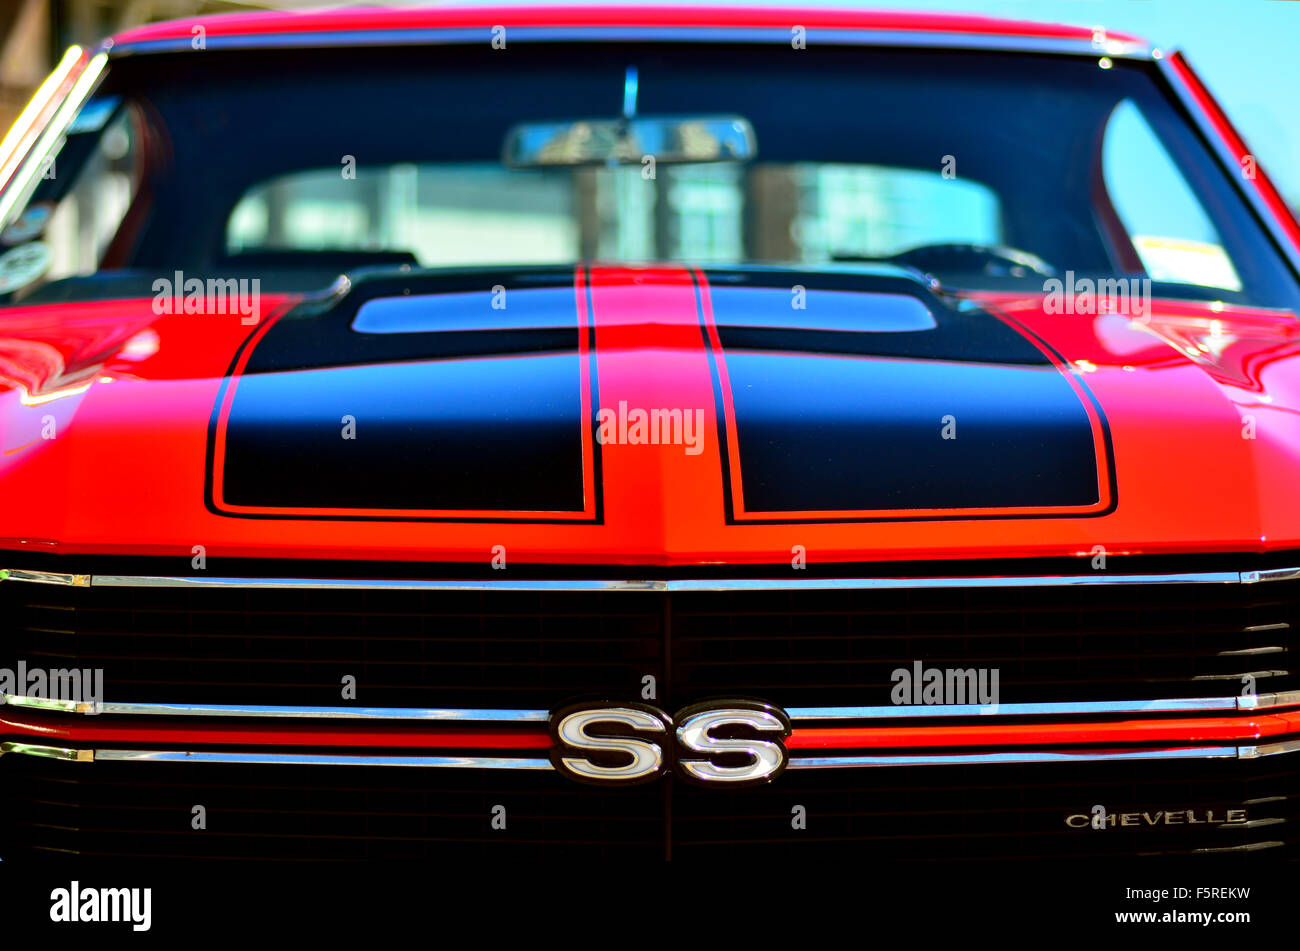 Muscle Cars Stock Photos & Muscle Cars Stock Images - Alamy